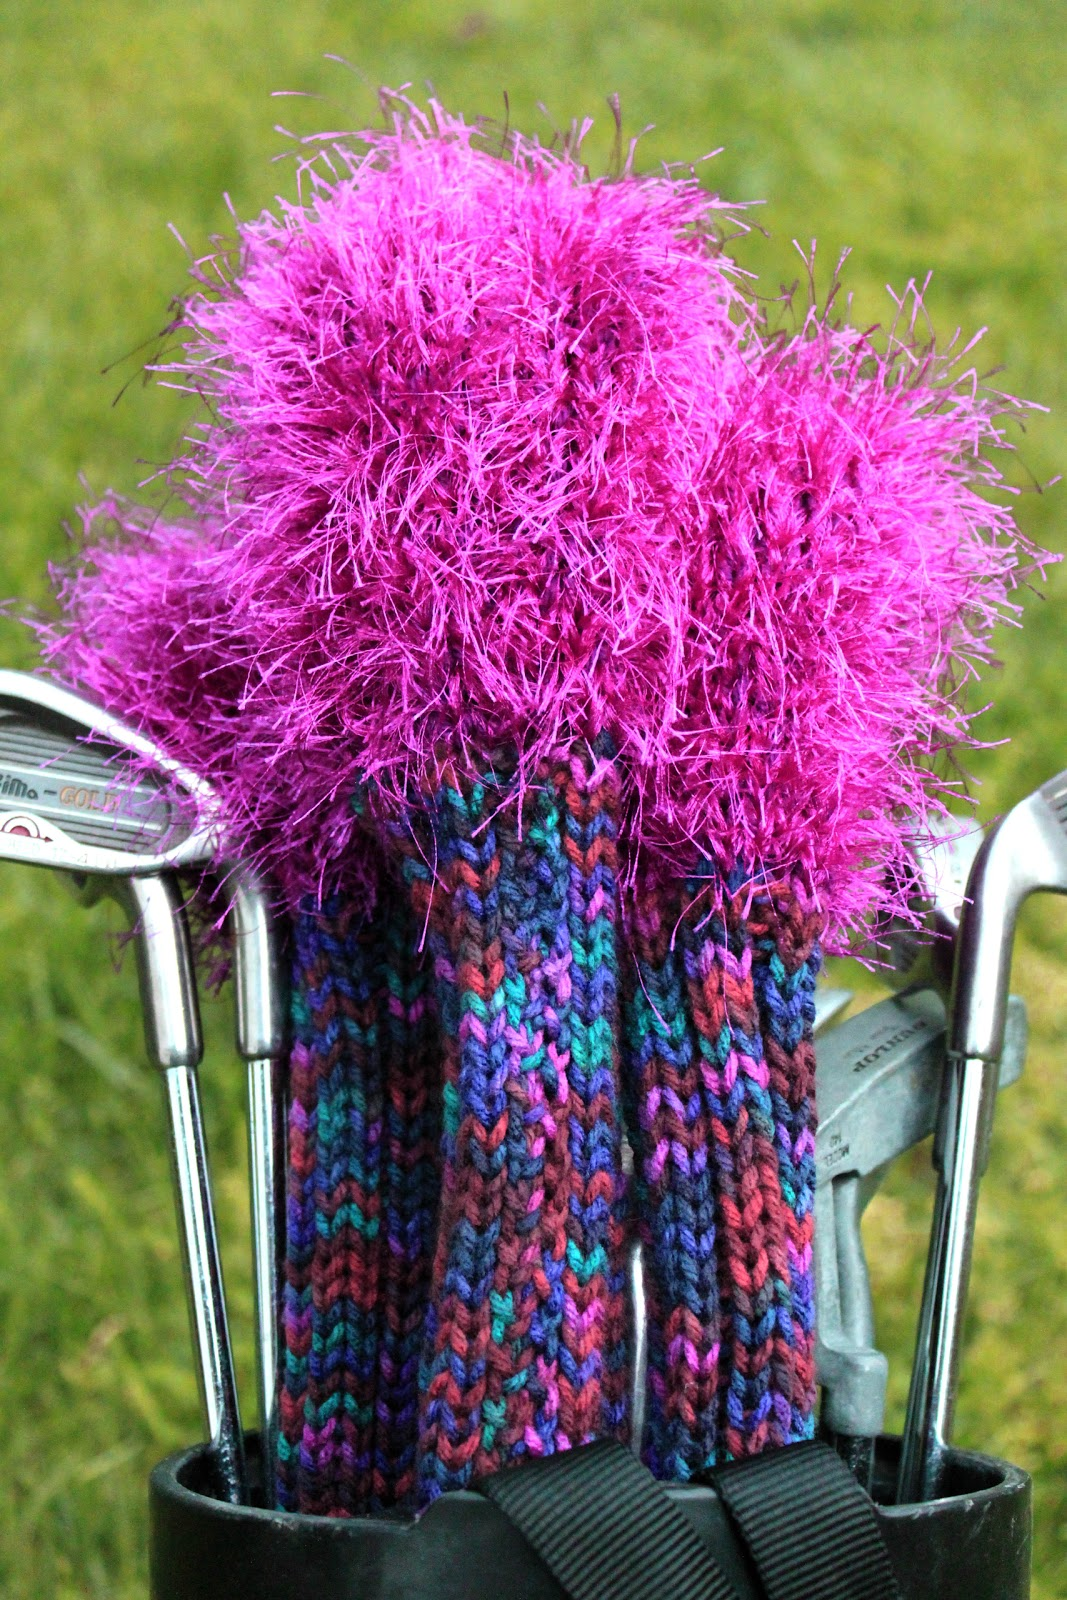 Knitting Pattern Golf Driver Cover : The Creative Imperative: Knitted Gift for Mom (or Dad if They Werent So ...